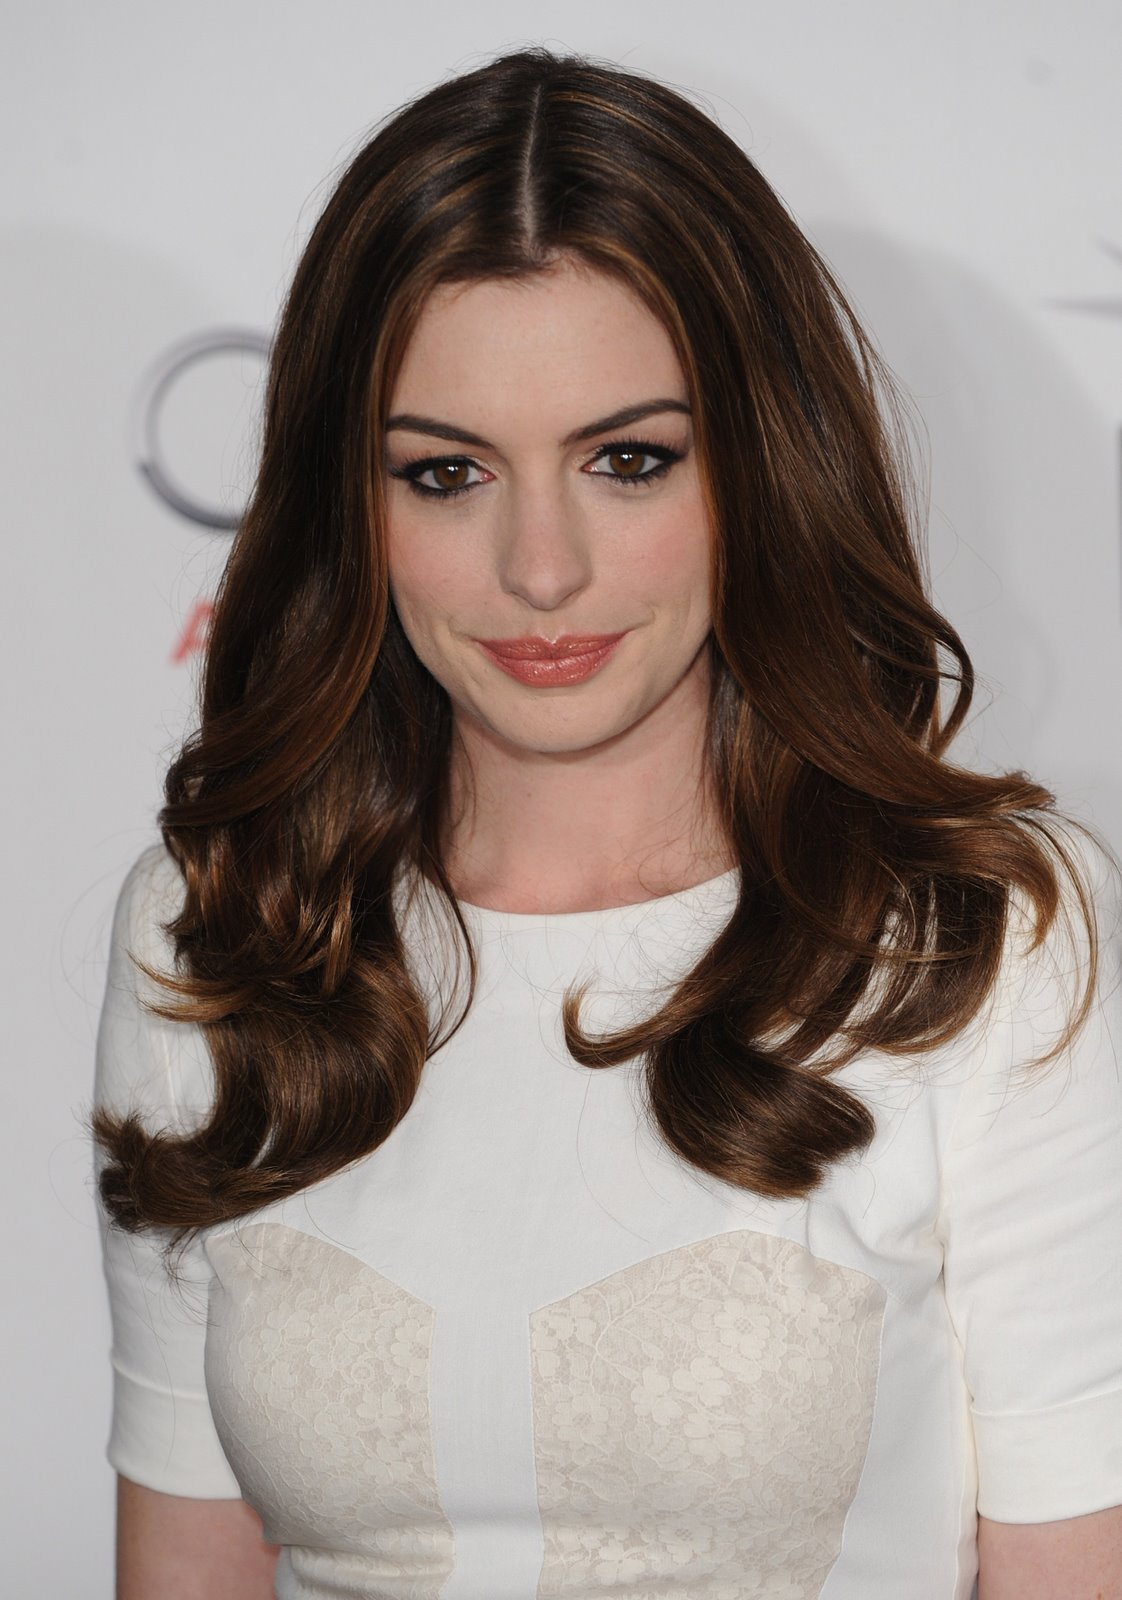 Anne Hathaway Oscars  Nude Naked Pussy Slip Celebrity-1781